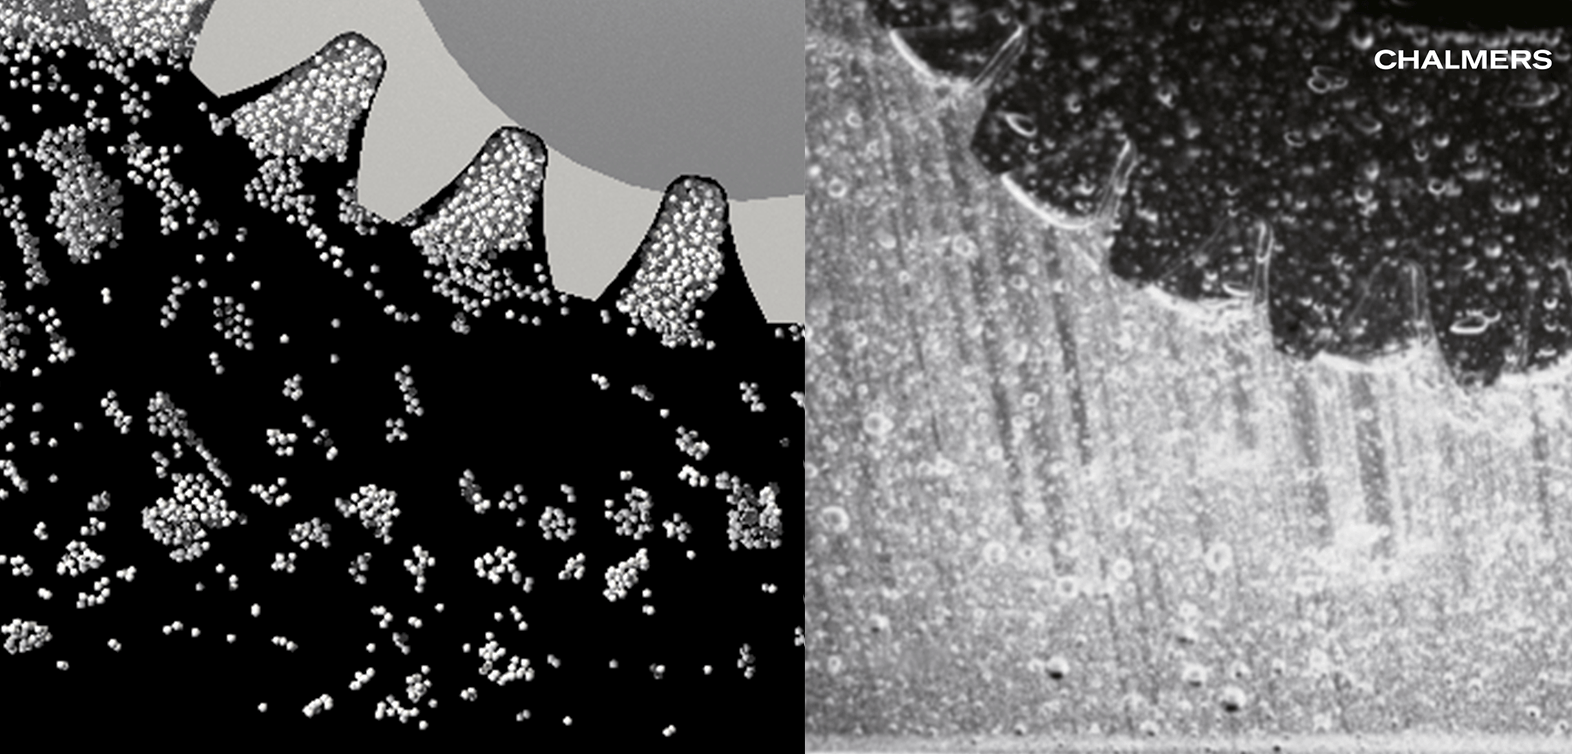 Comparison of air bubbles forming in simulation (left) and experiment